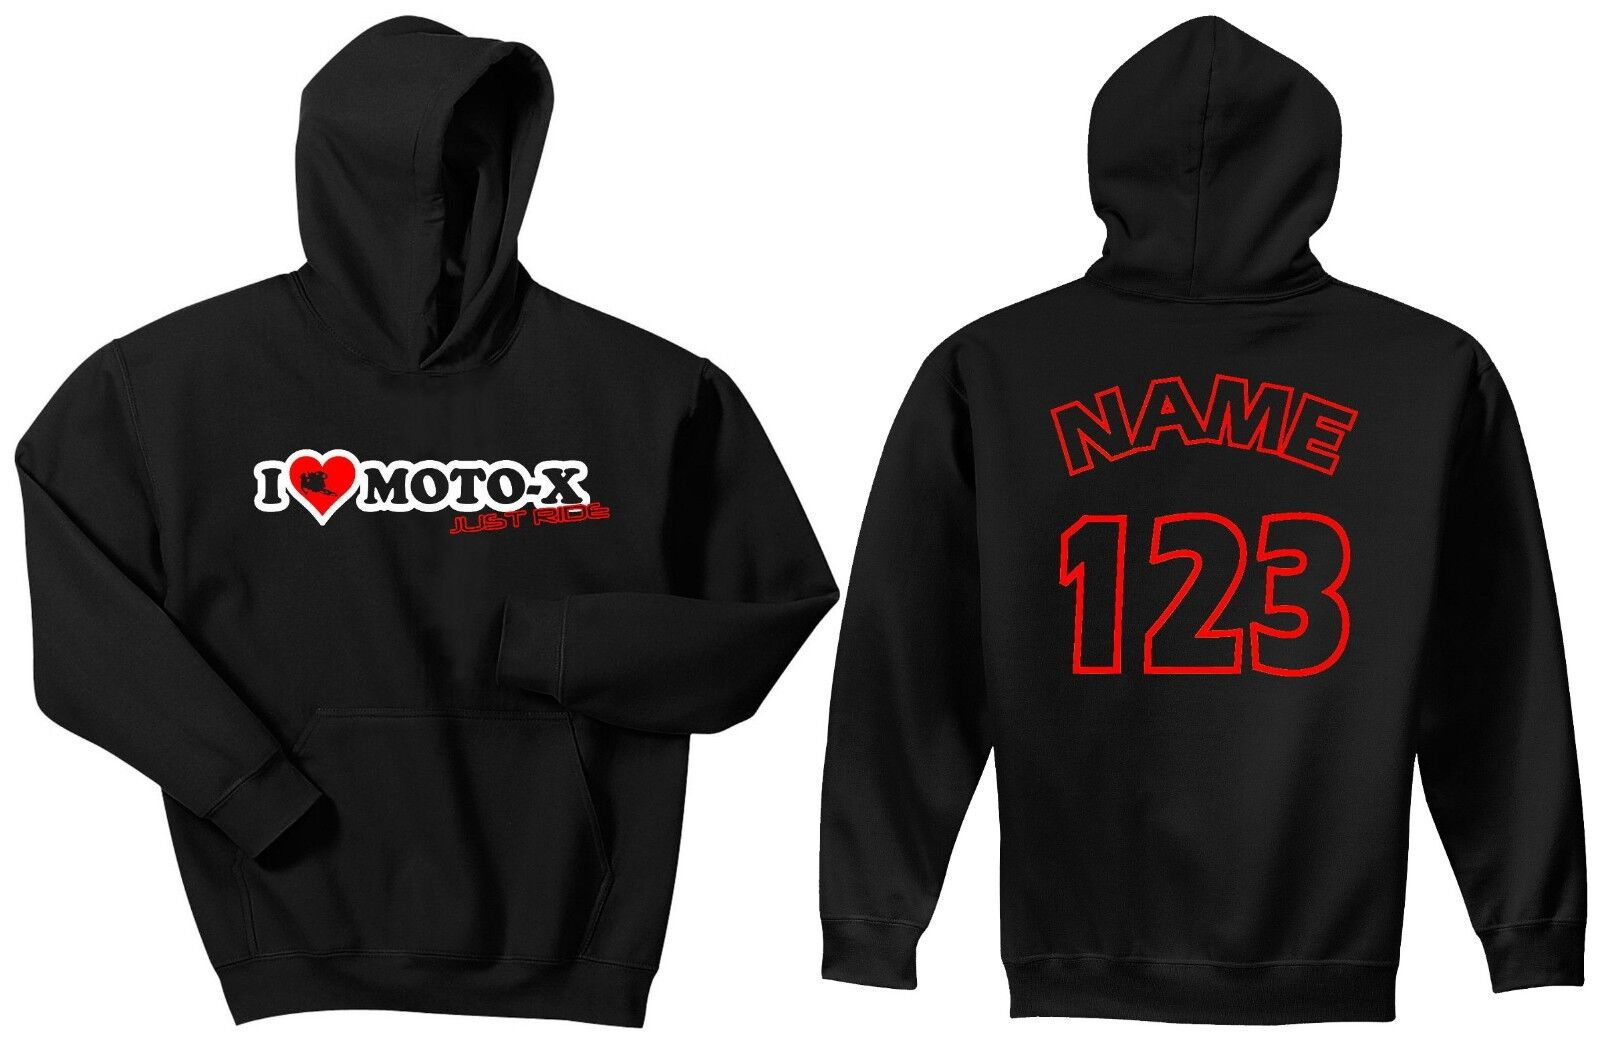 I Love Moto-X Kapuzenpulli Sweatshirt Just Ride Pulli Mx Motocross YZF Crf Kxf